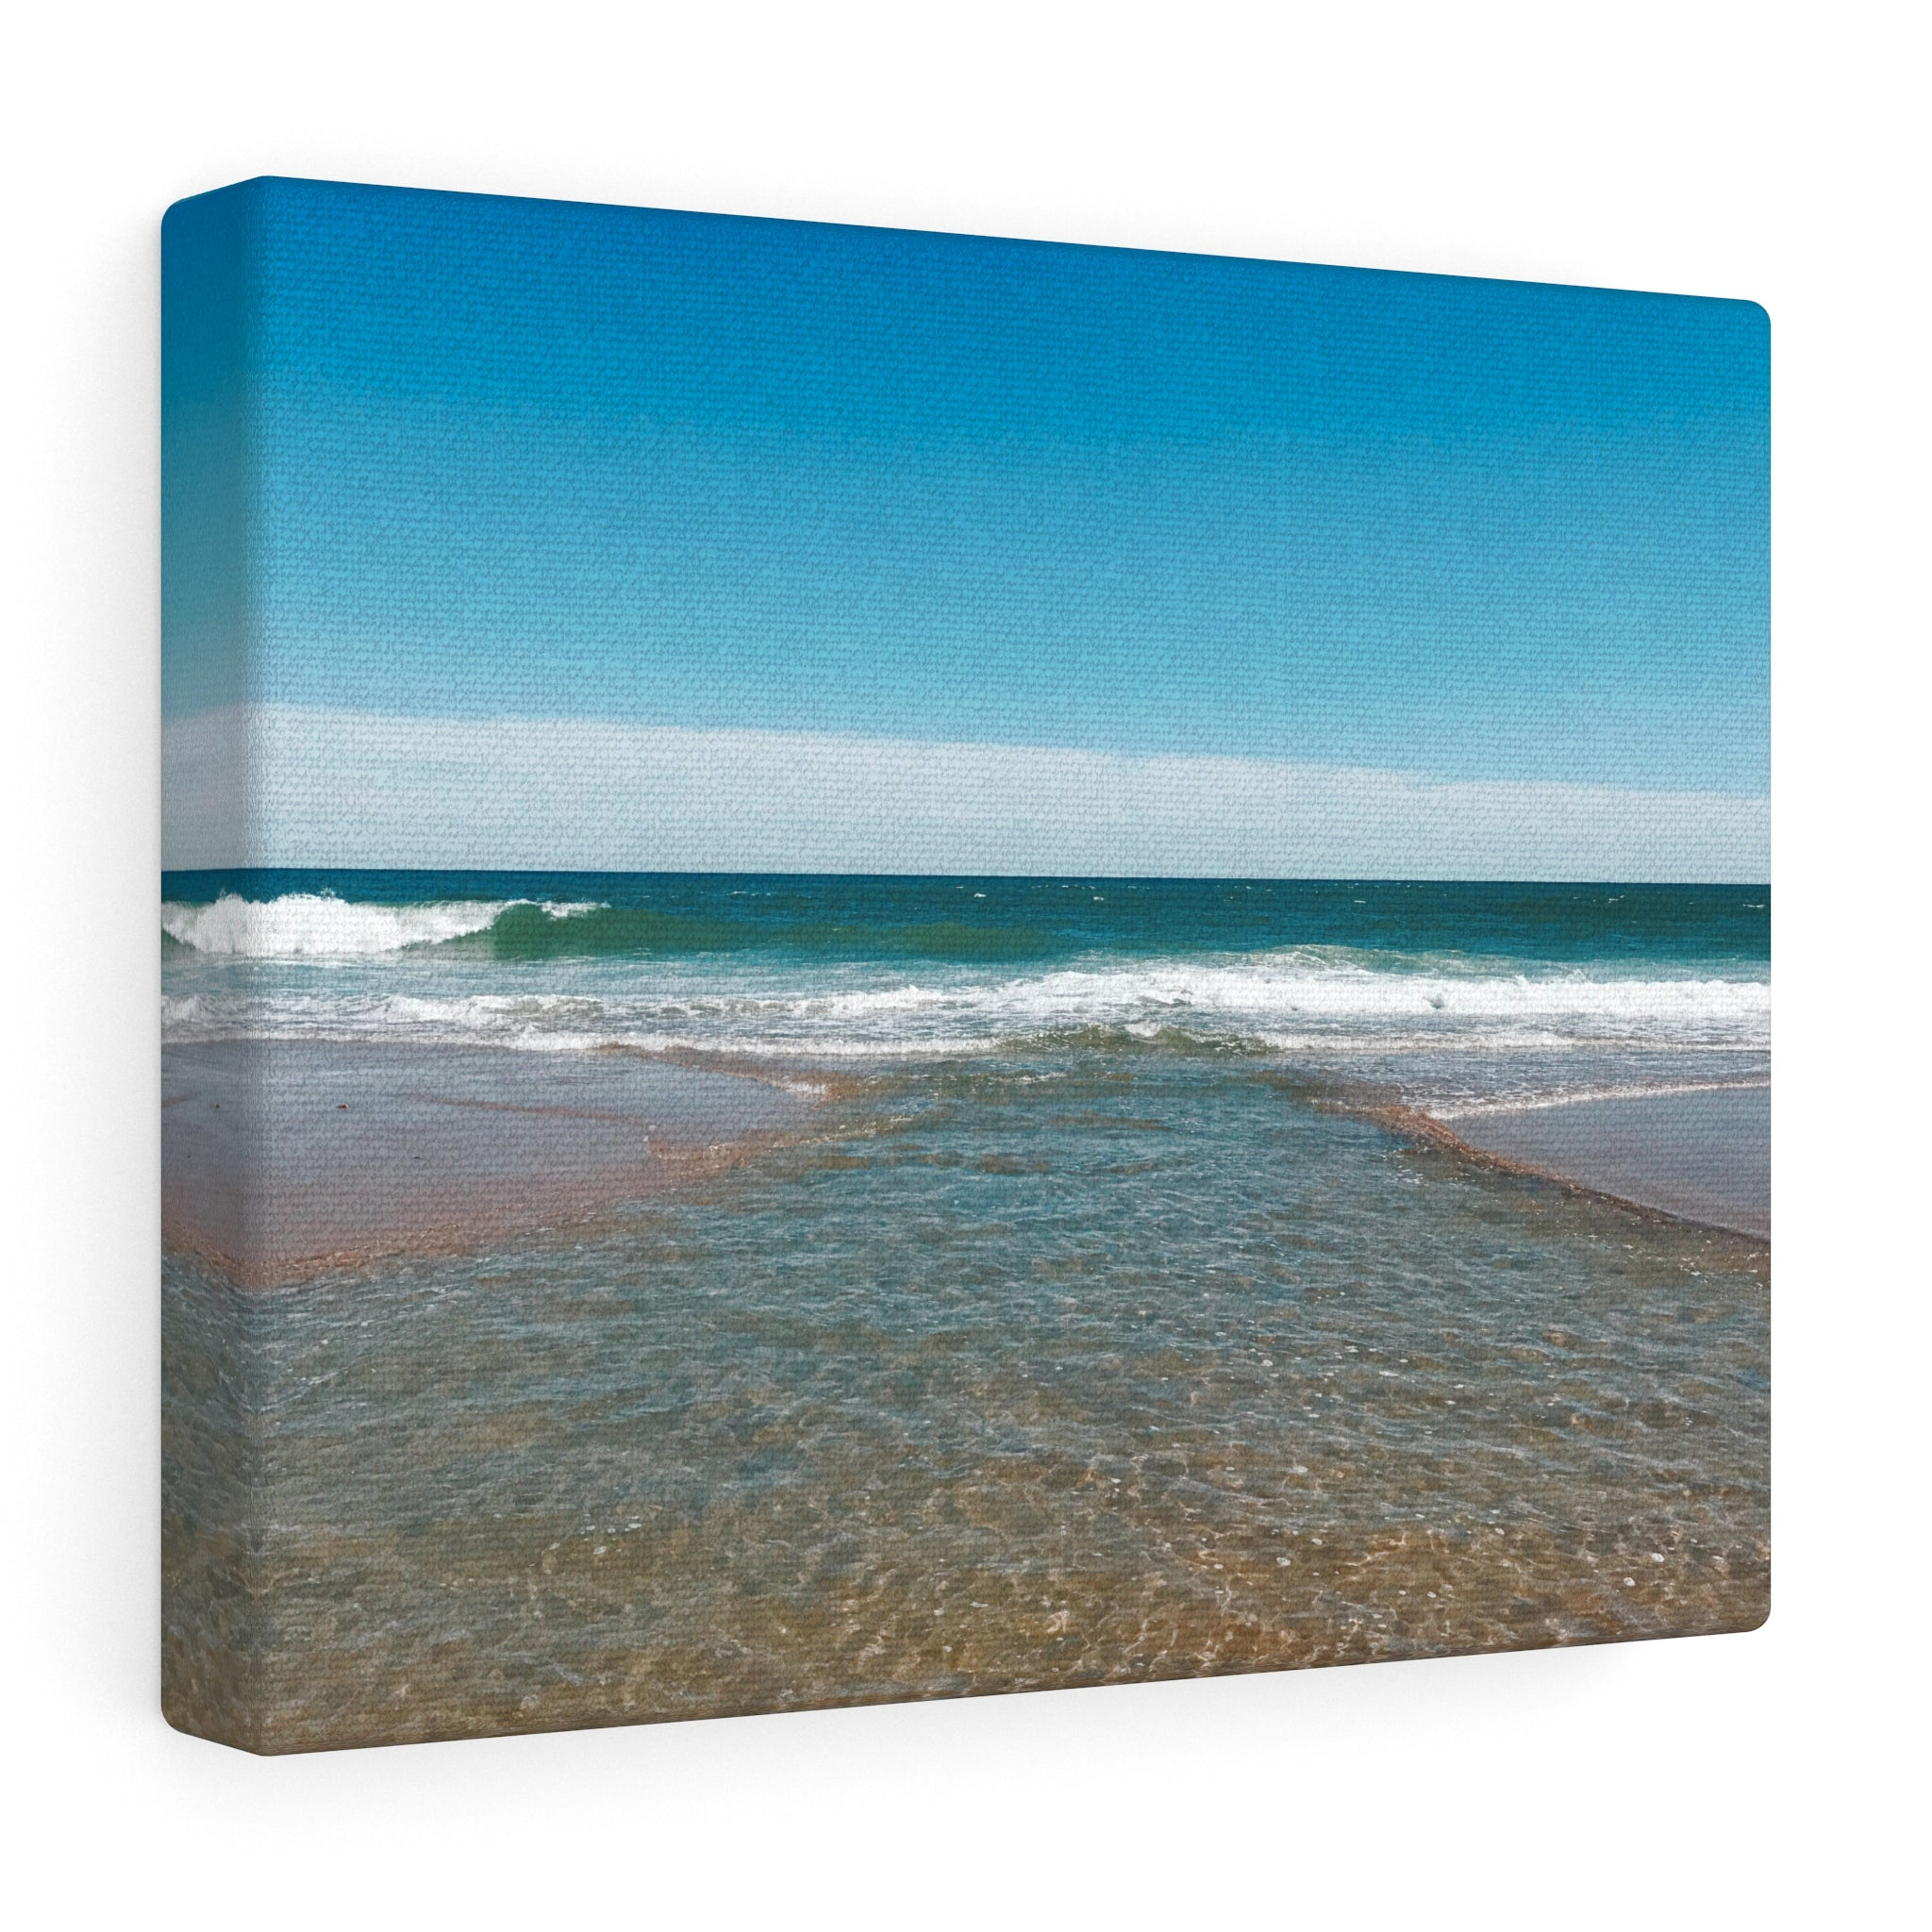 Intersecting Waves Canvas Gallery Wrap